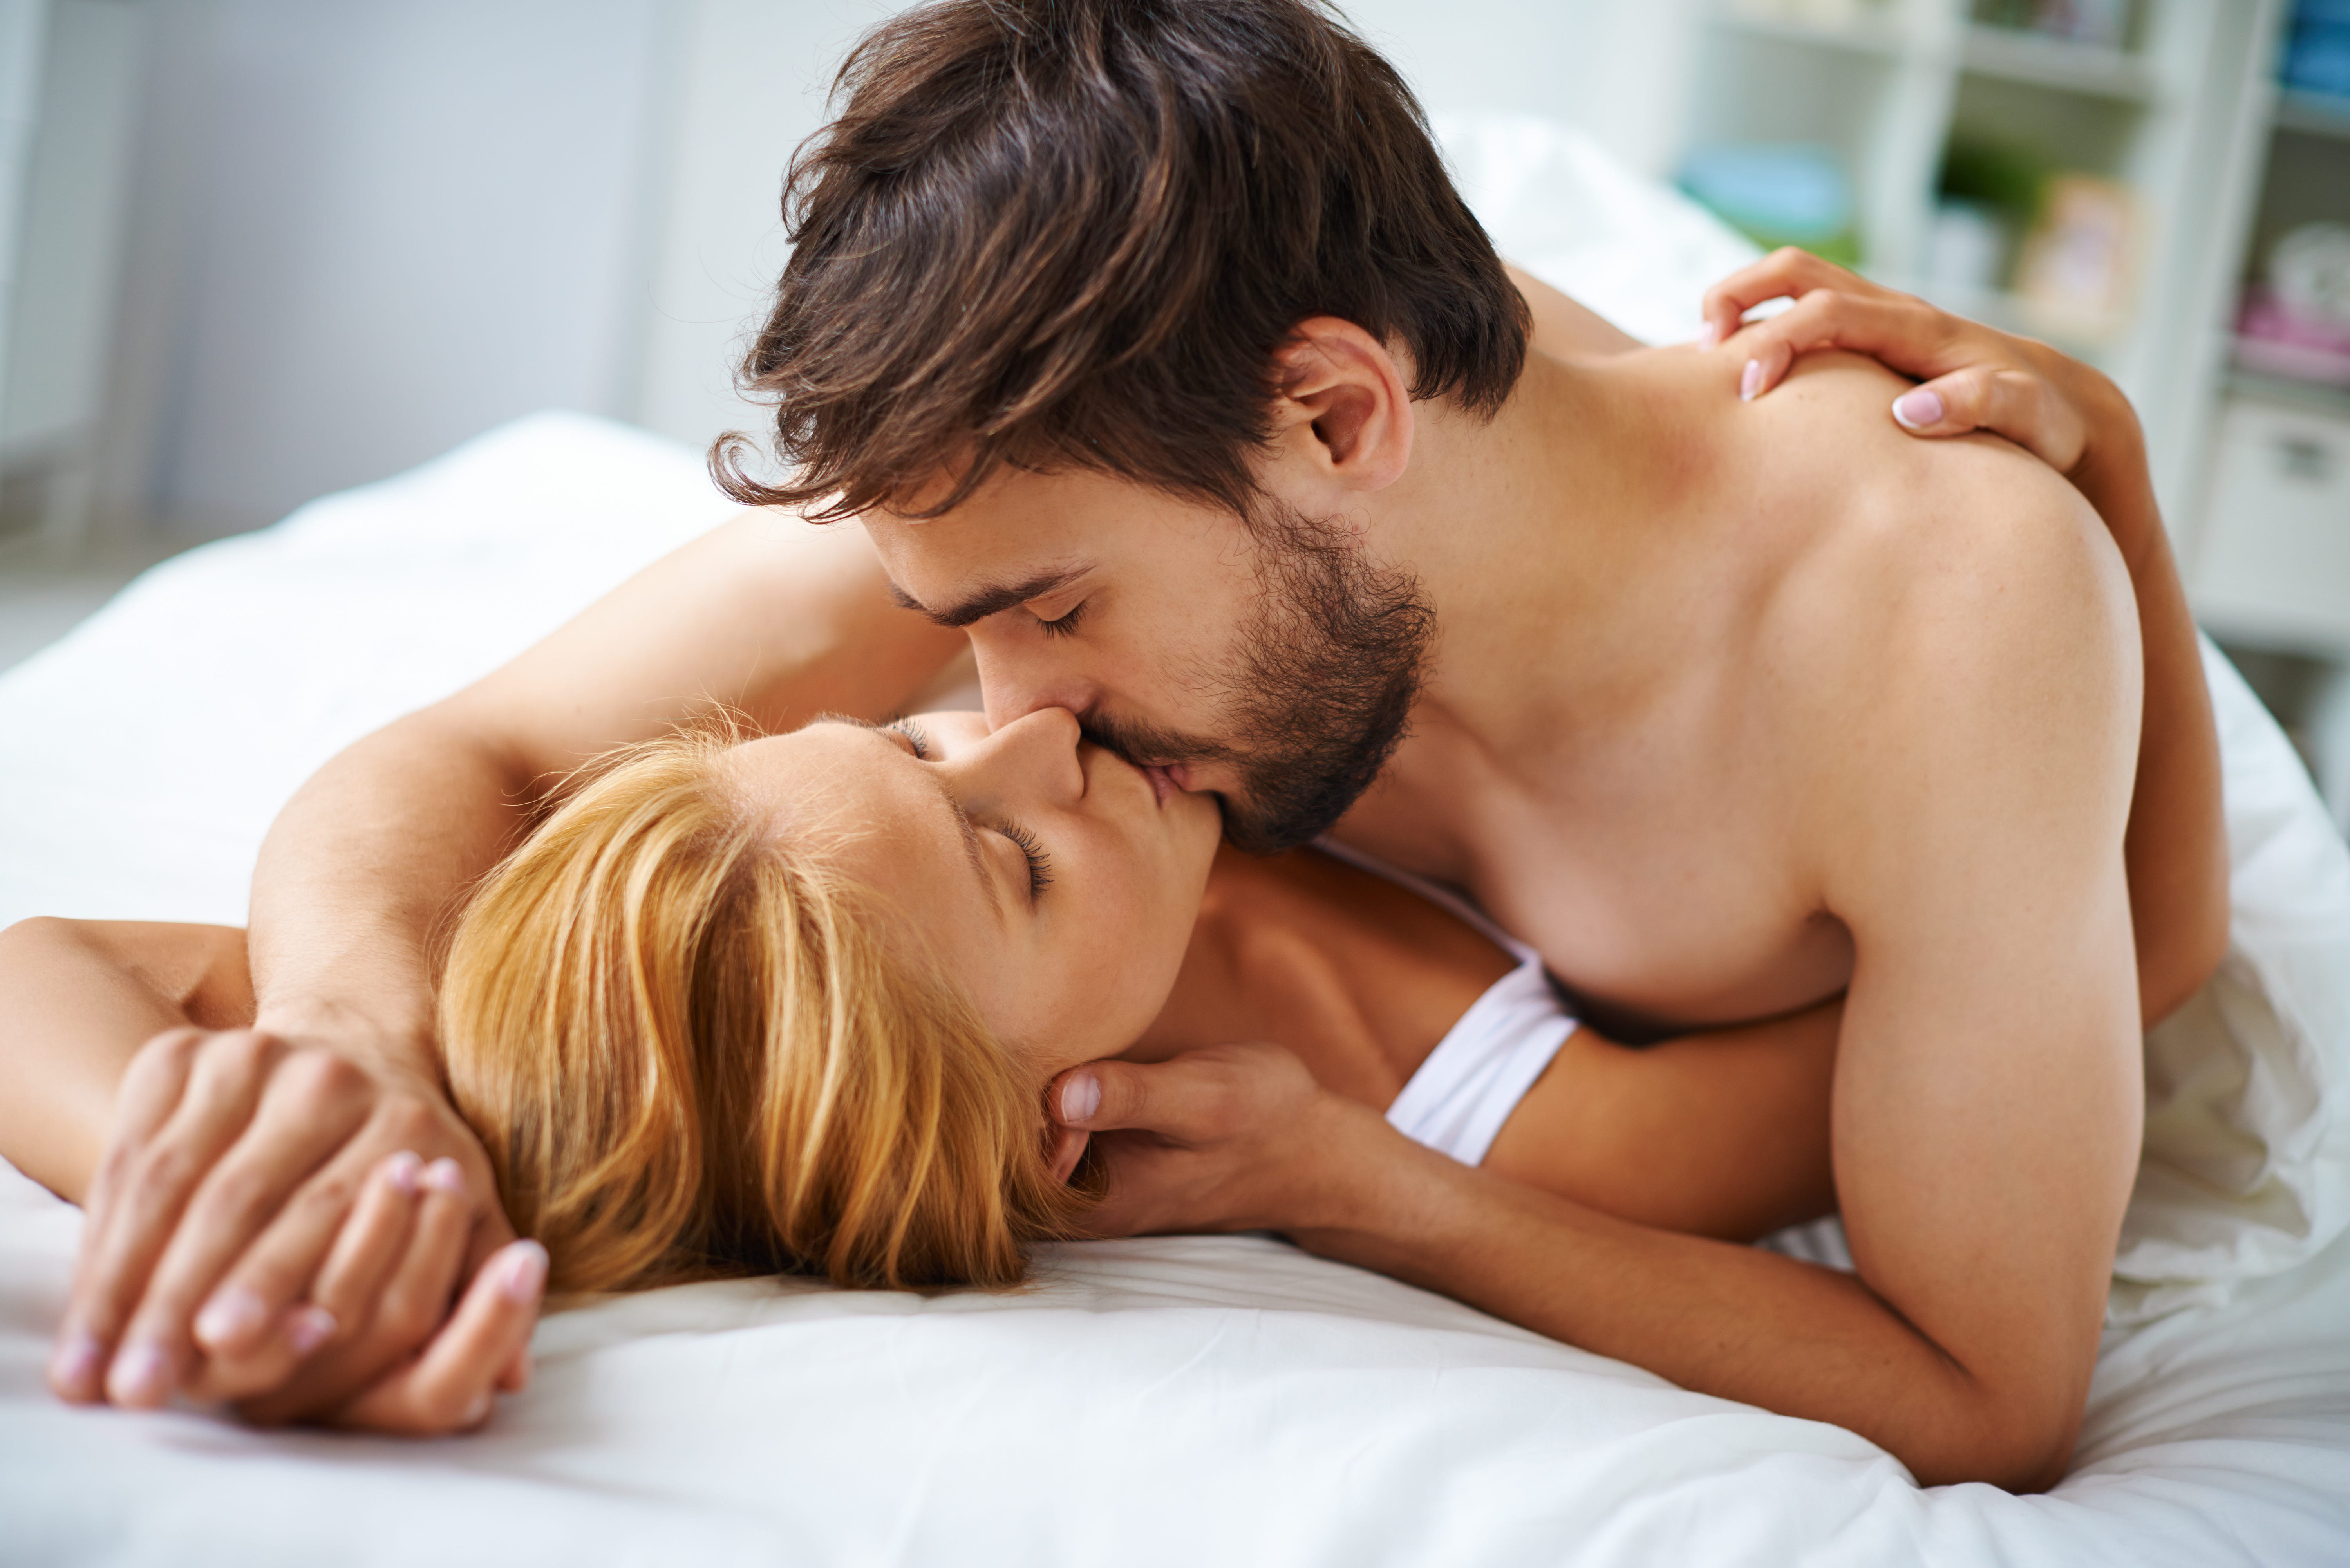 How To Have Sexual Intercourse With A Girl